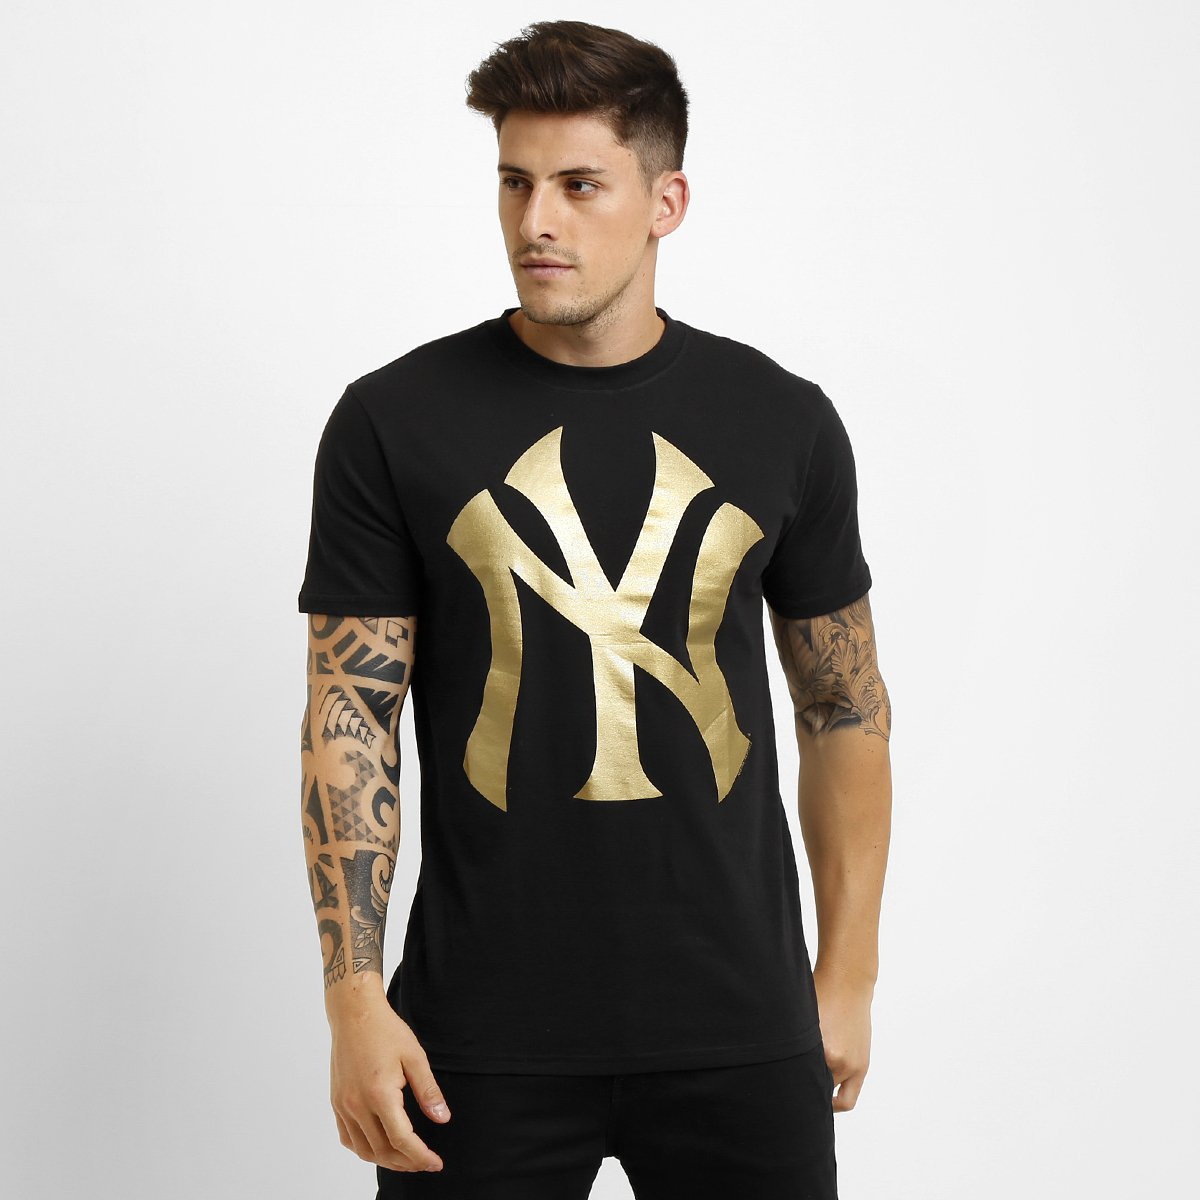 Camiseta New Era MLB Color New York Yankees 10 - Preto e Dourado - Compre  Agora  835a19a7164